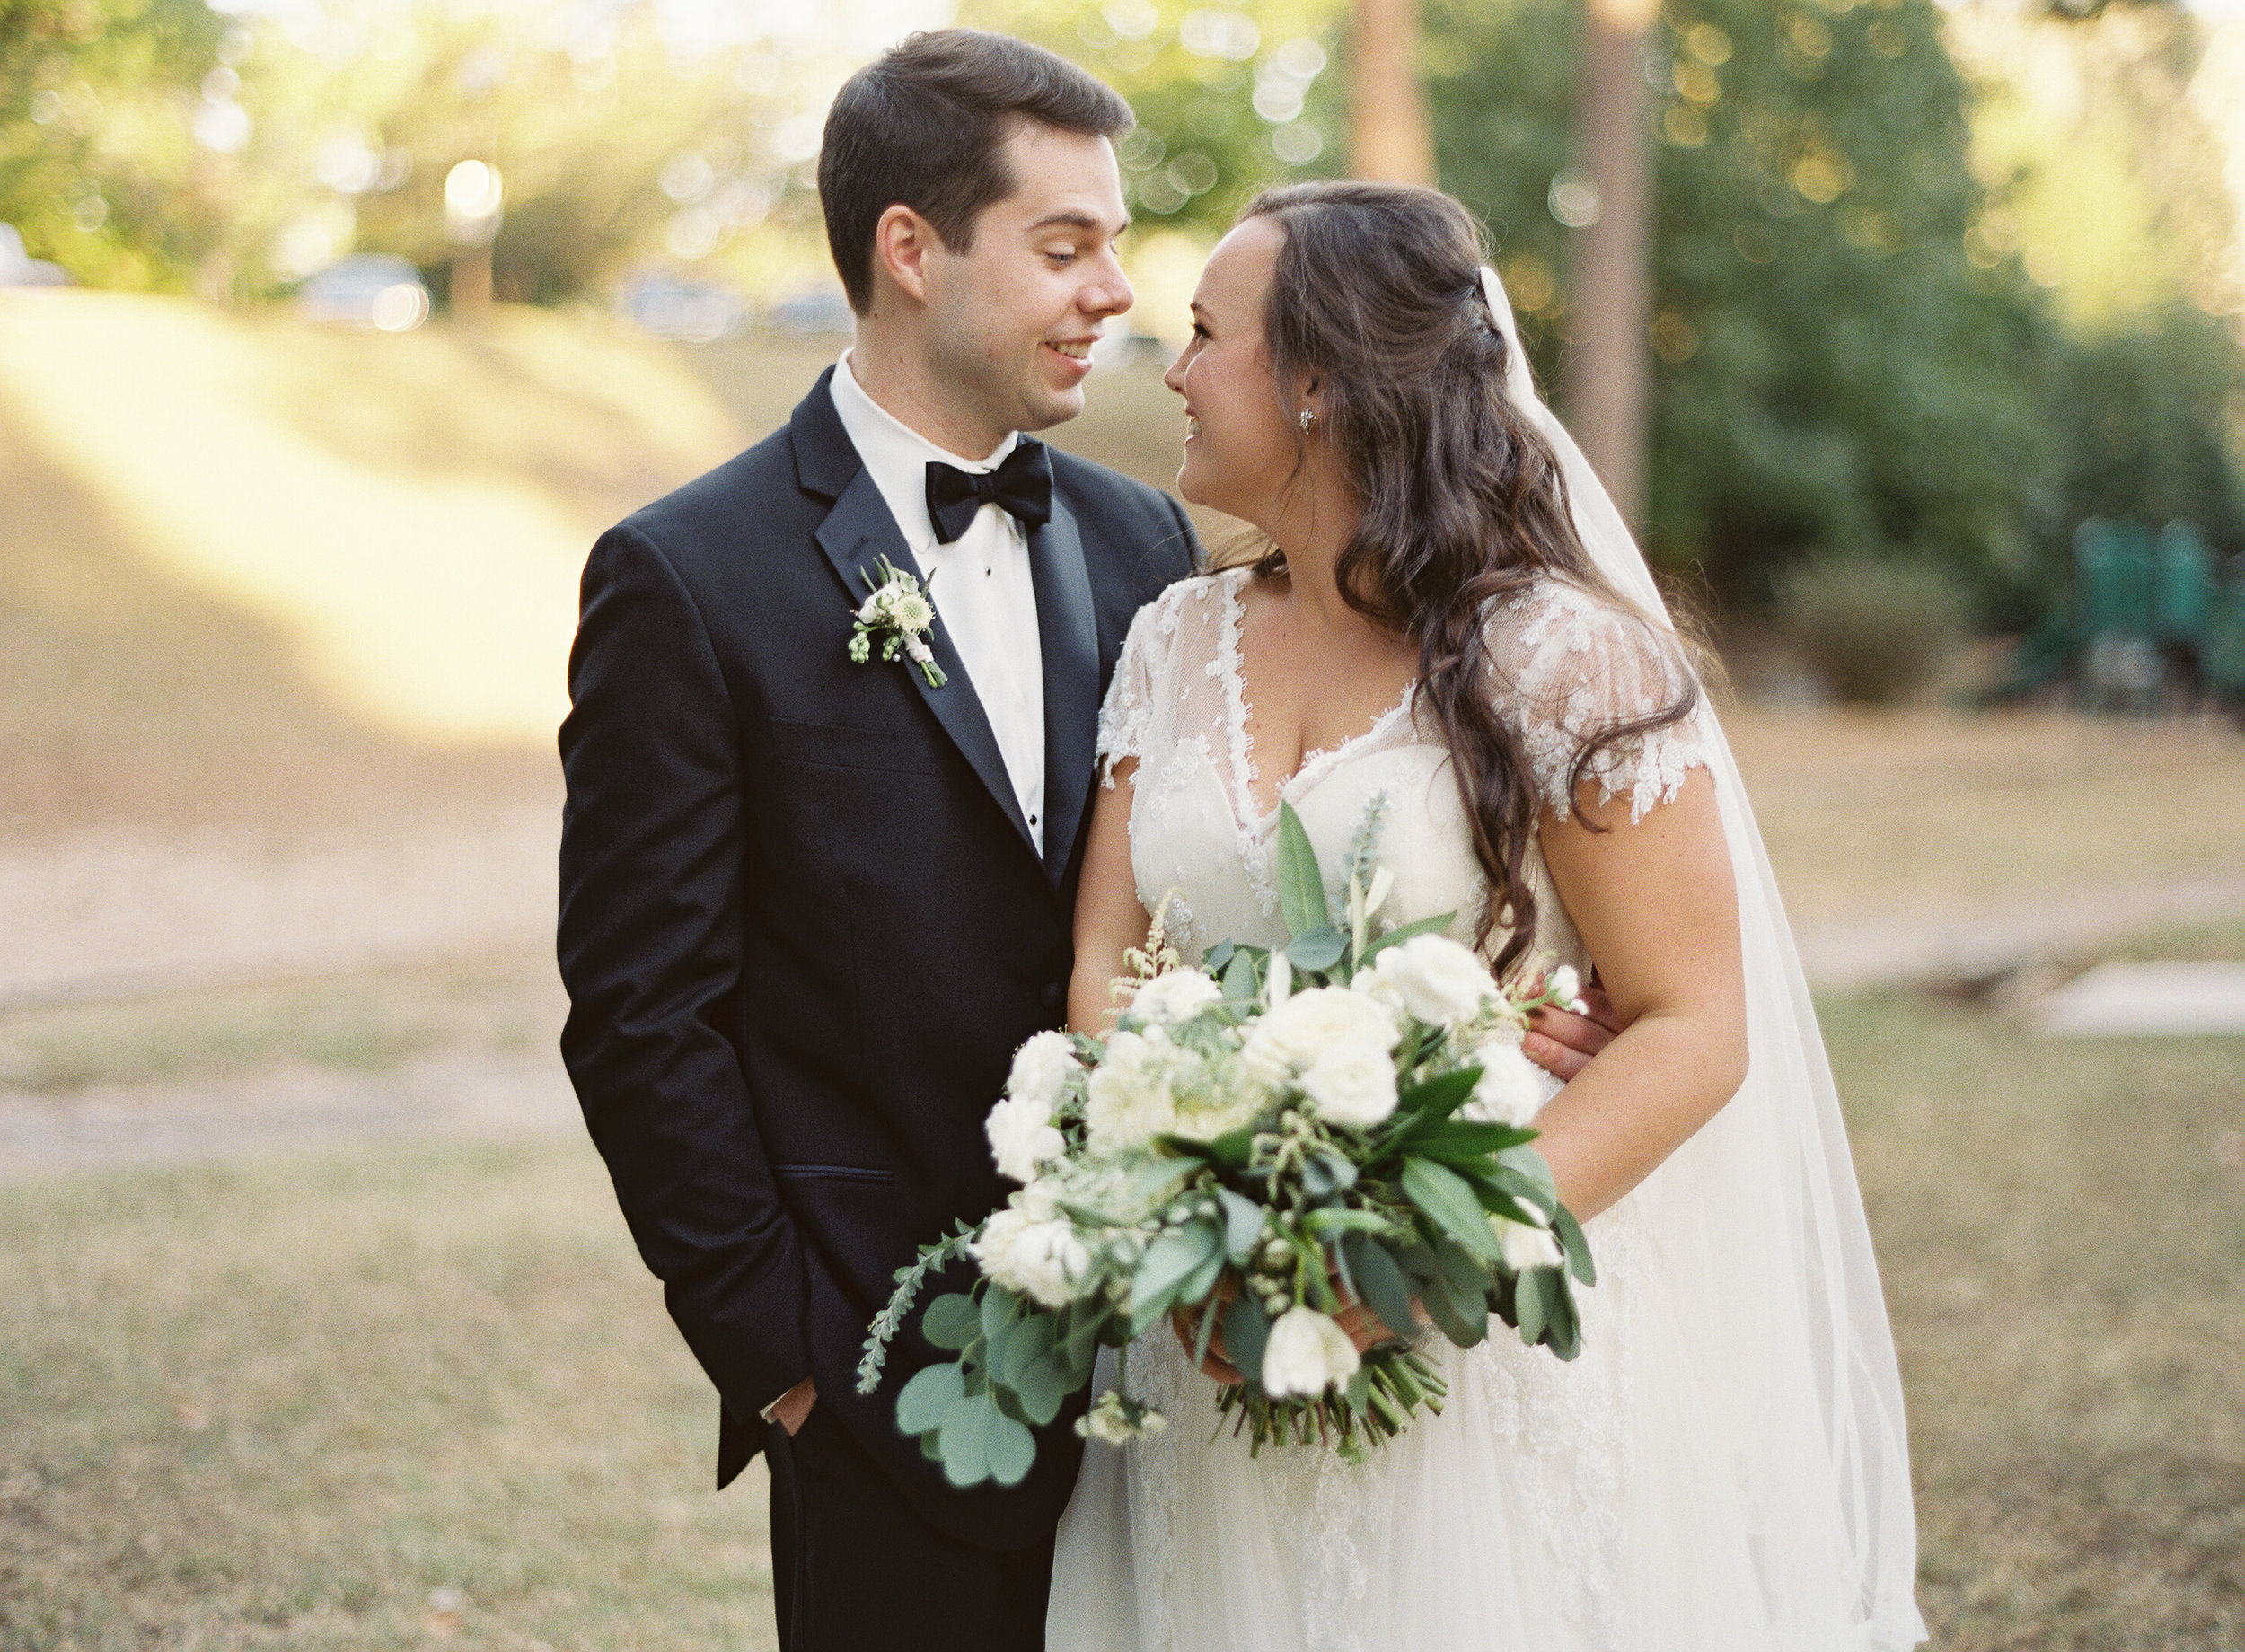 Handley Breaux Designs | October Wedding | Alabama Wedding Planner | Southern Wedding Planner | Birmingham Wedding